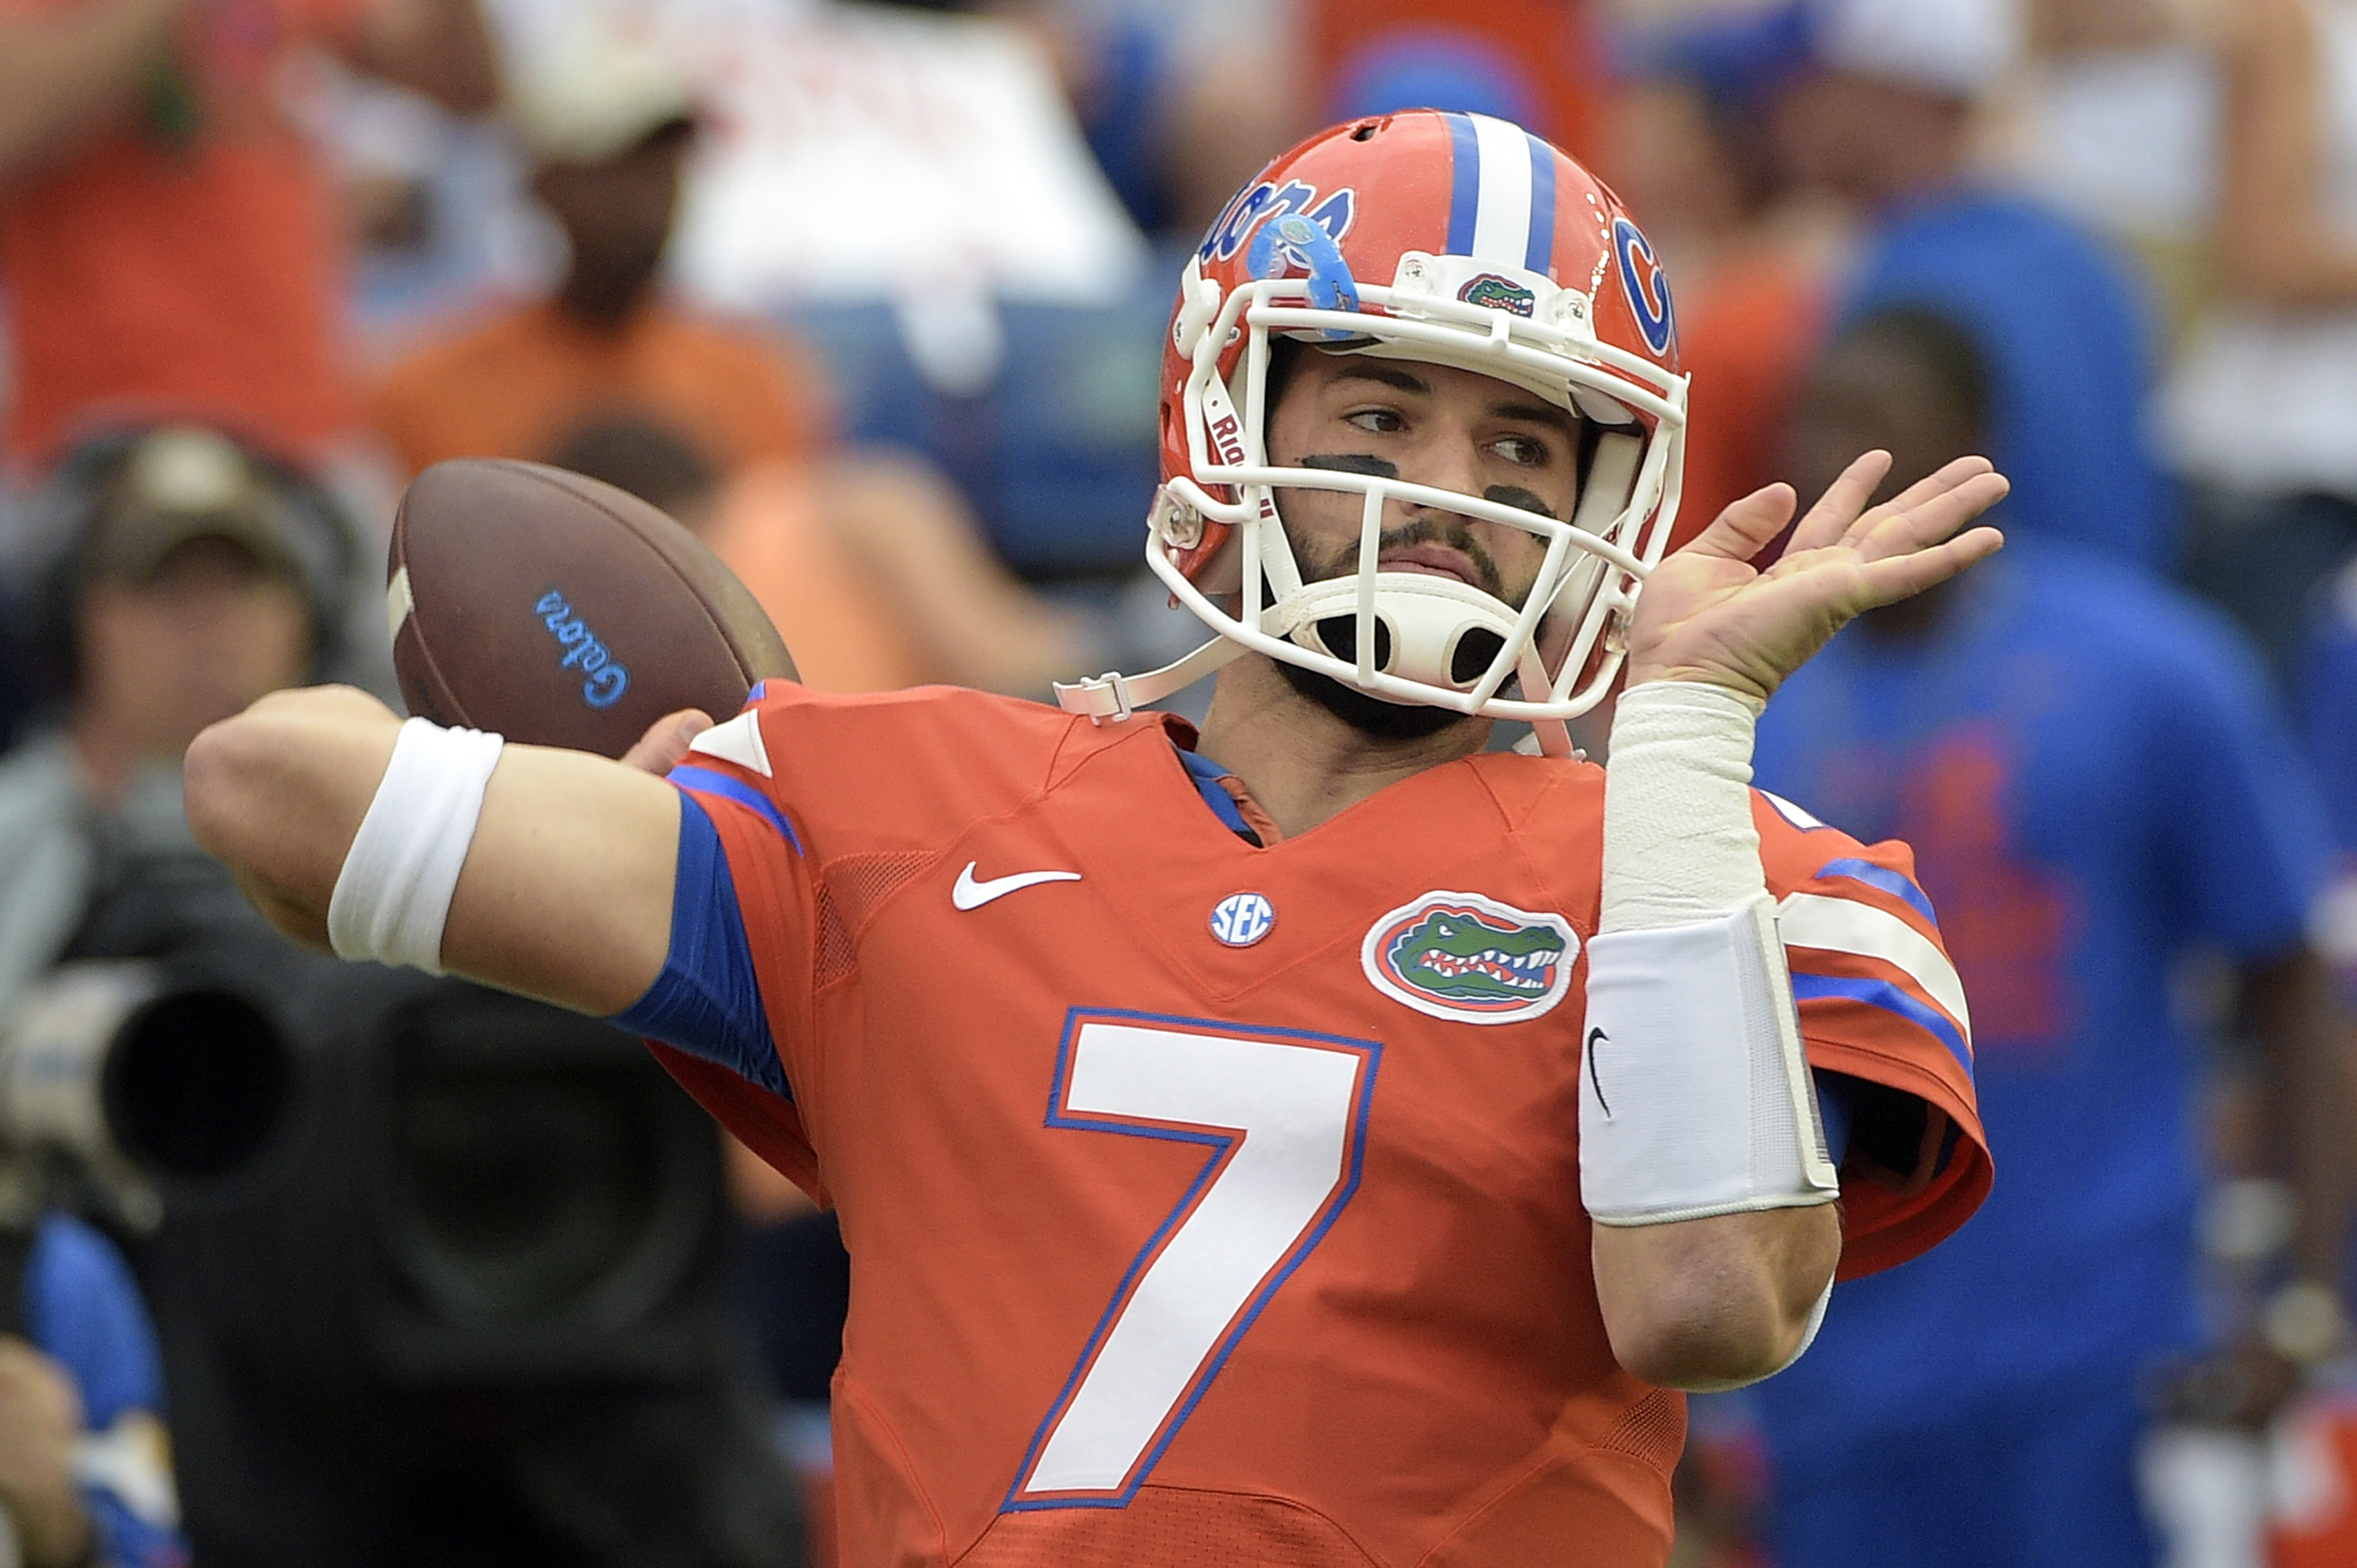 FILE - In this Oct. 3, 2015, file photo, Florida quarterback Will Grier warms up before an NCAA college football game against Mississippi in Gainesville, Fla. A person familiar with the situation says Grier has been suspended indefinitely for violating th